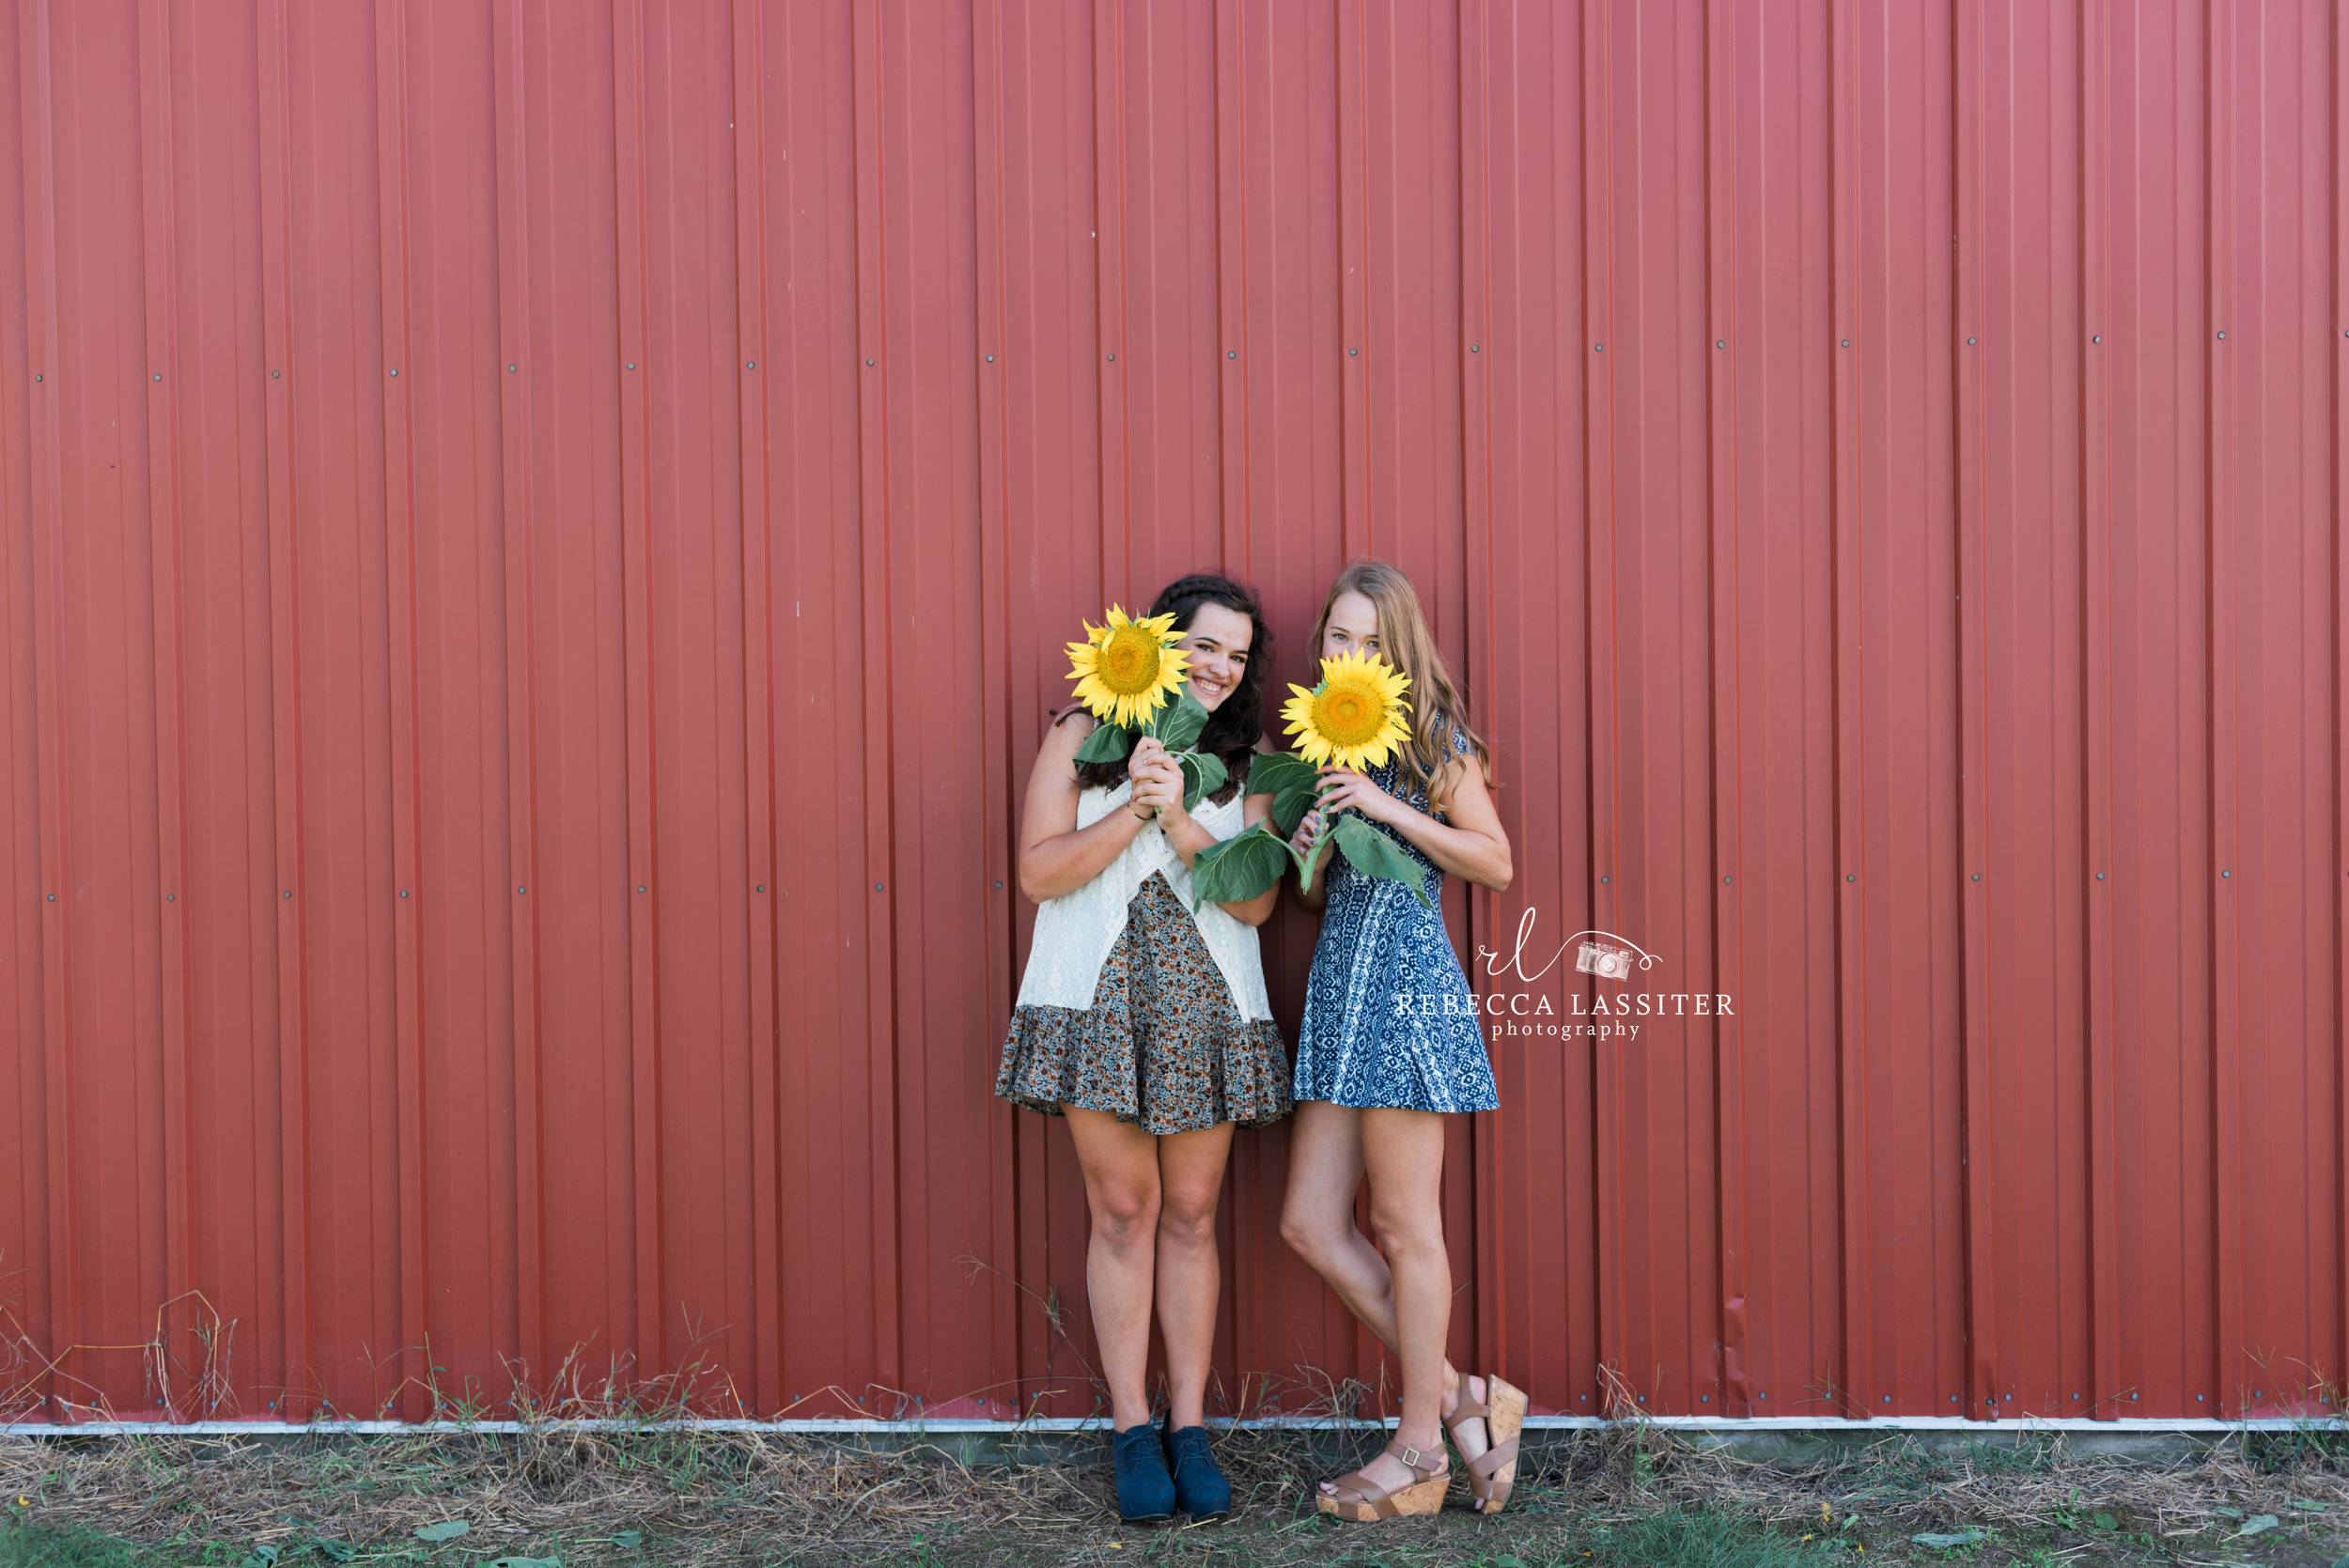 Relax & be Silly - These two best friends enjoyed their session.